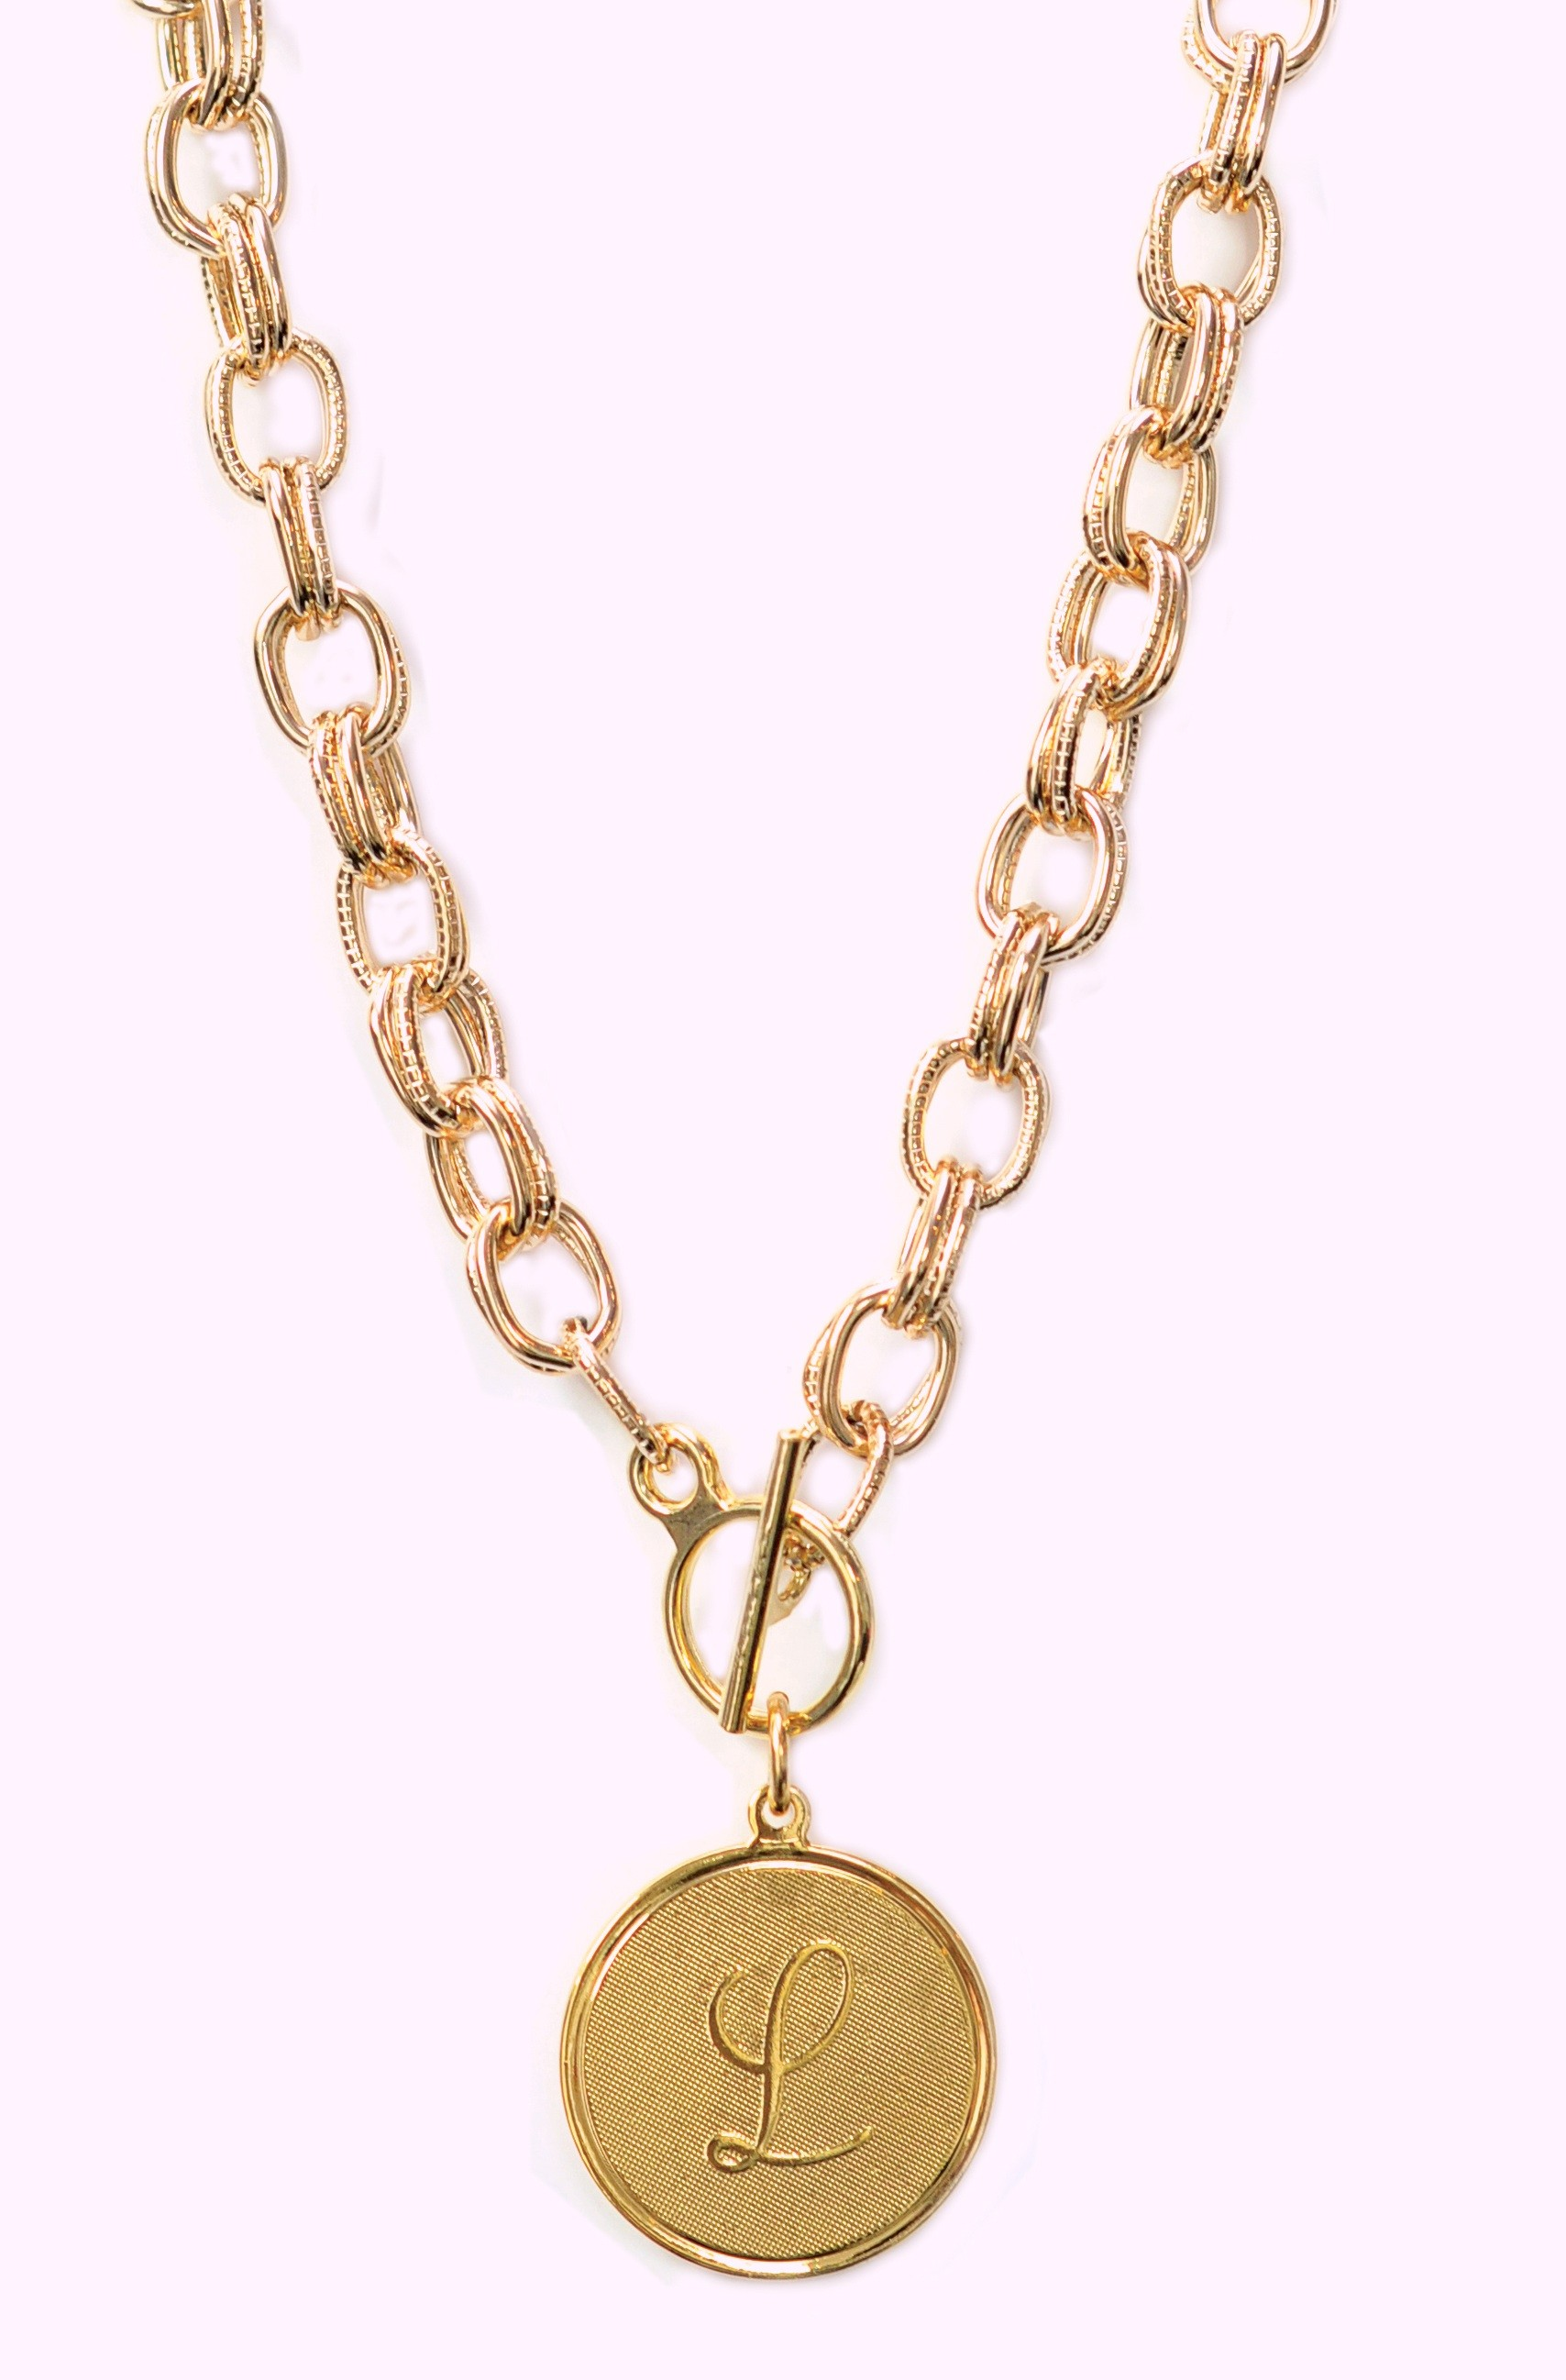 moon lola nantucket necklace with dalton charm in gold